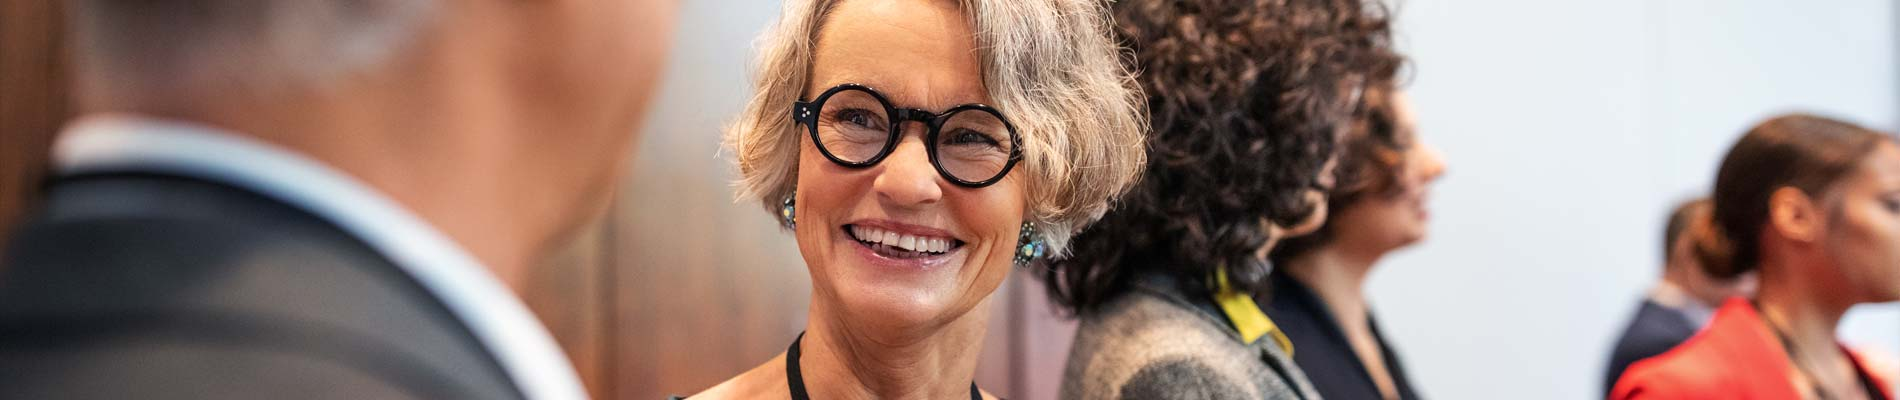 Woman with glasses smiles at networking event